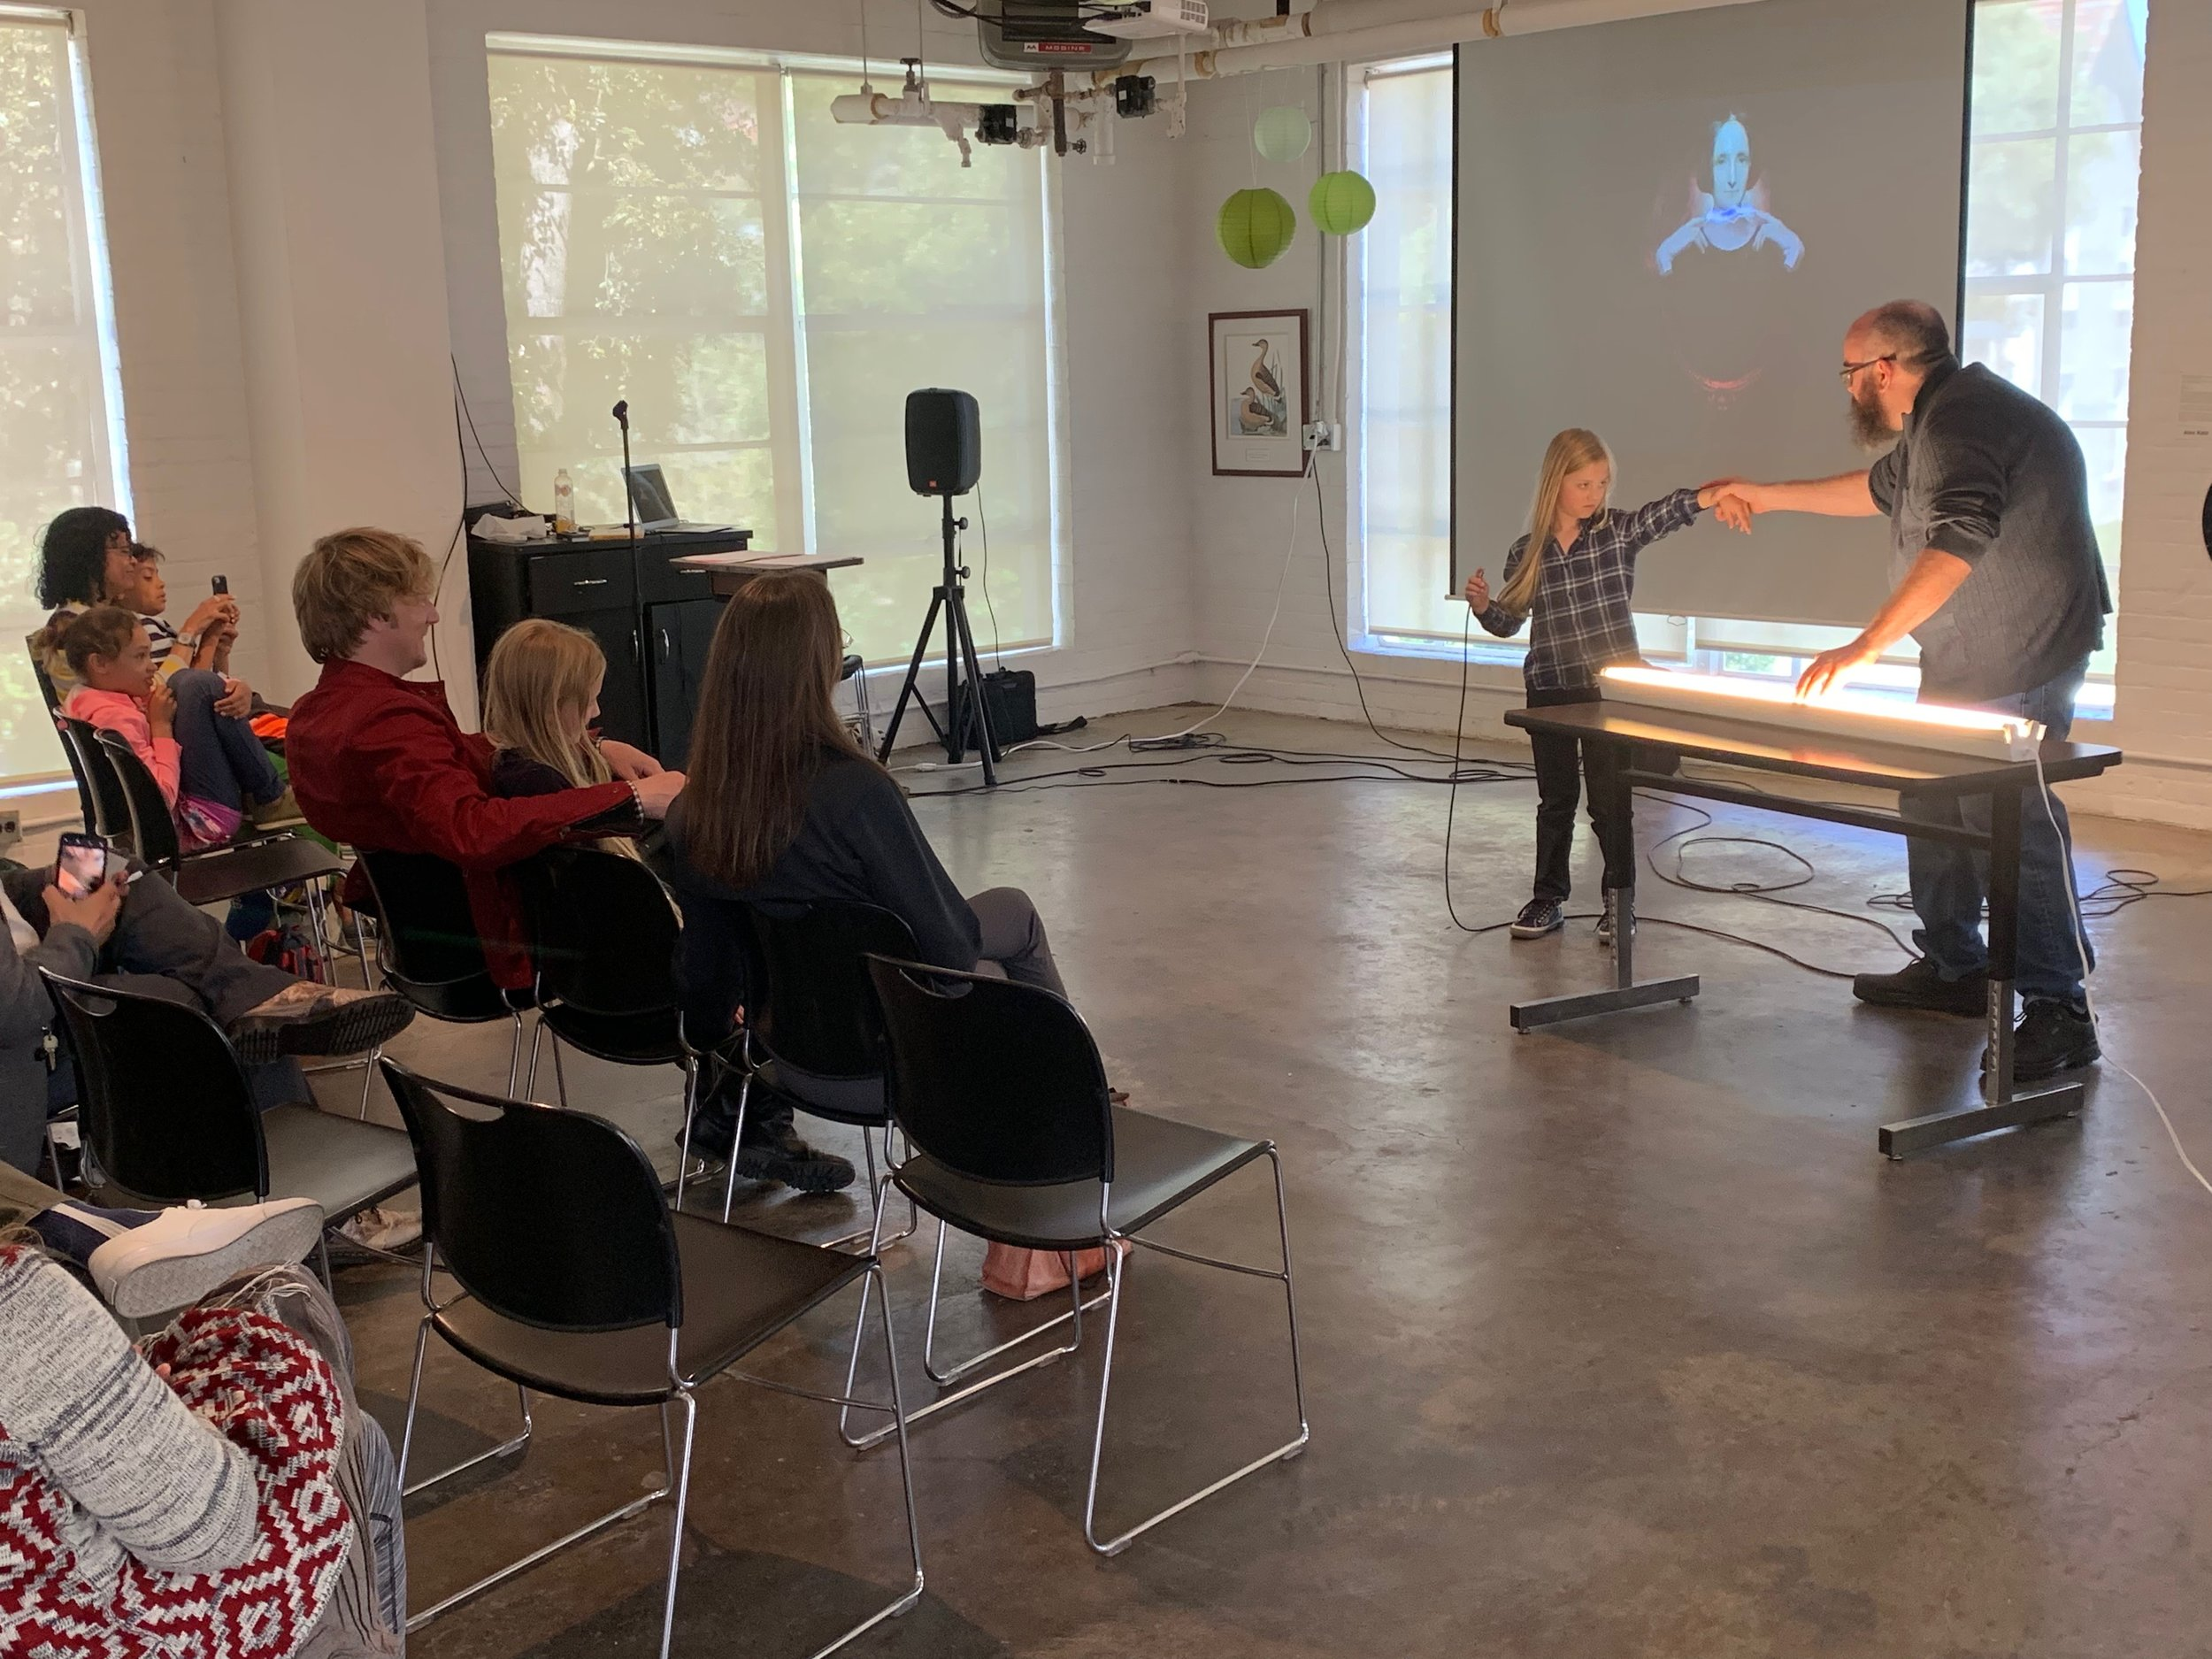 """Artist Matthew Weedman and an audience member demonstrate how to turn a light bulb into a musical instrument at Weedman's performance """"It's Alive!"""" in the Grabhorn Institute gallery, Summer 2019."""